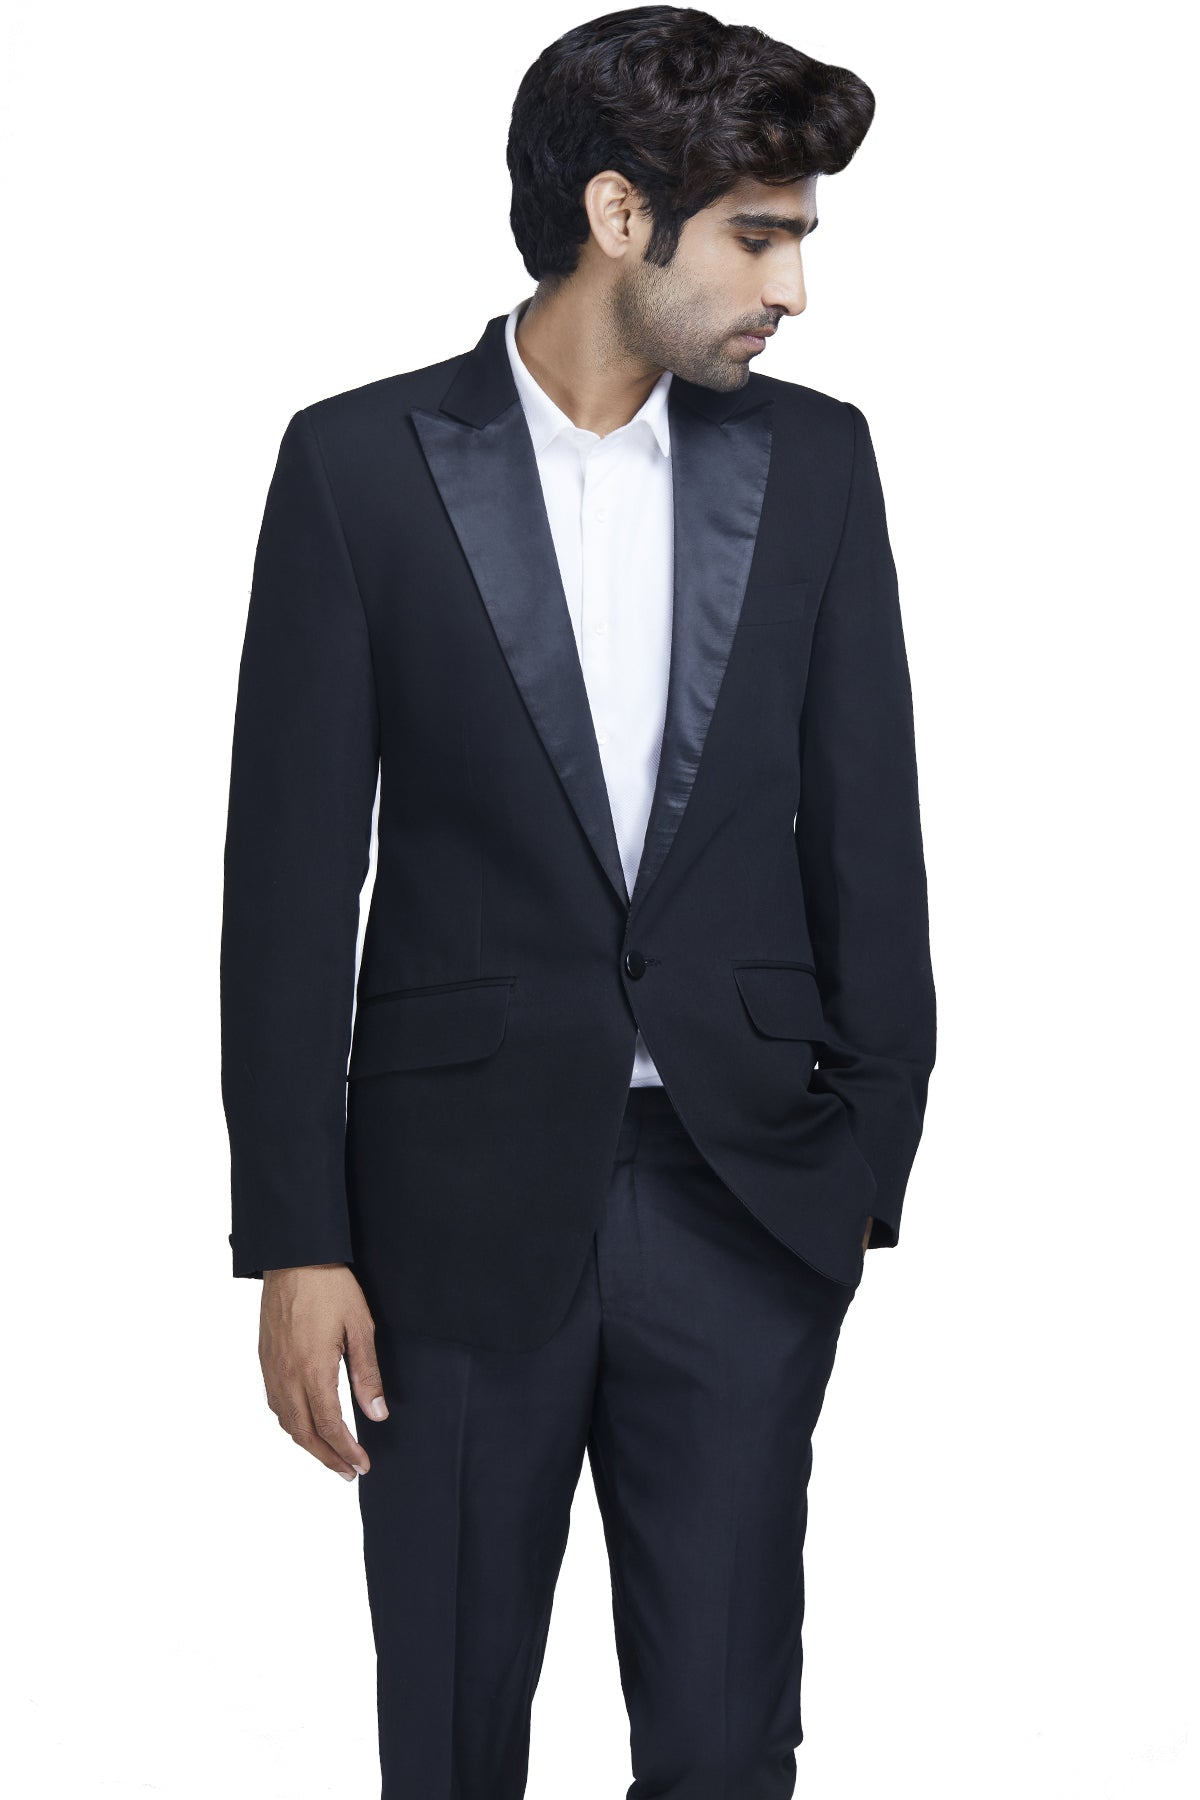 Black suit with pointed lapels